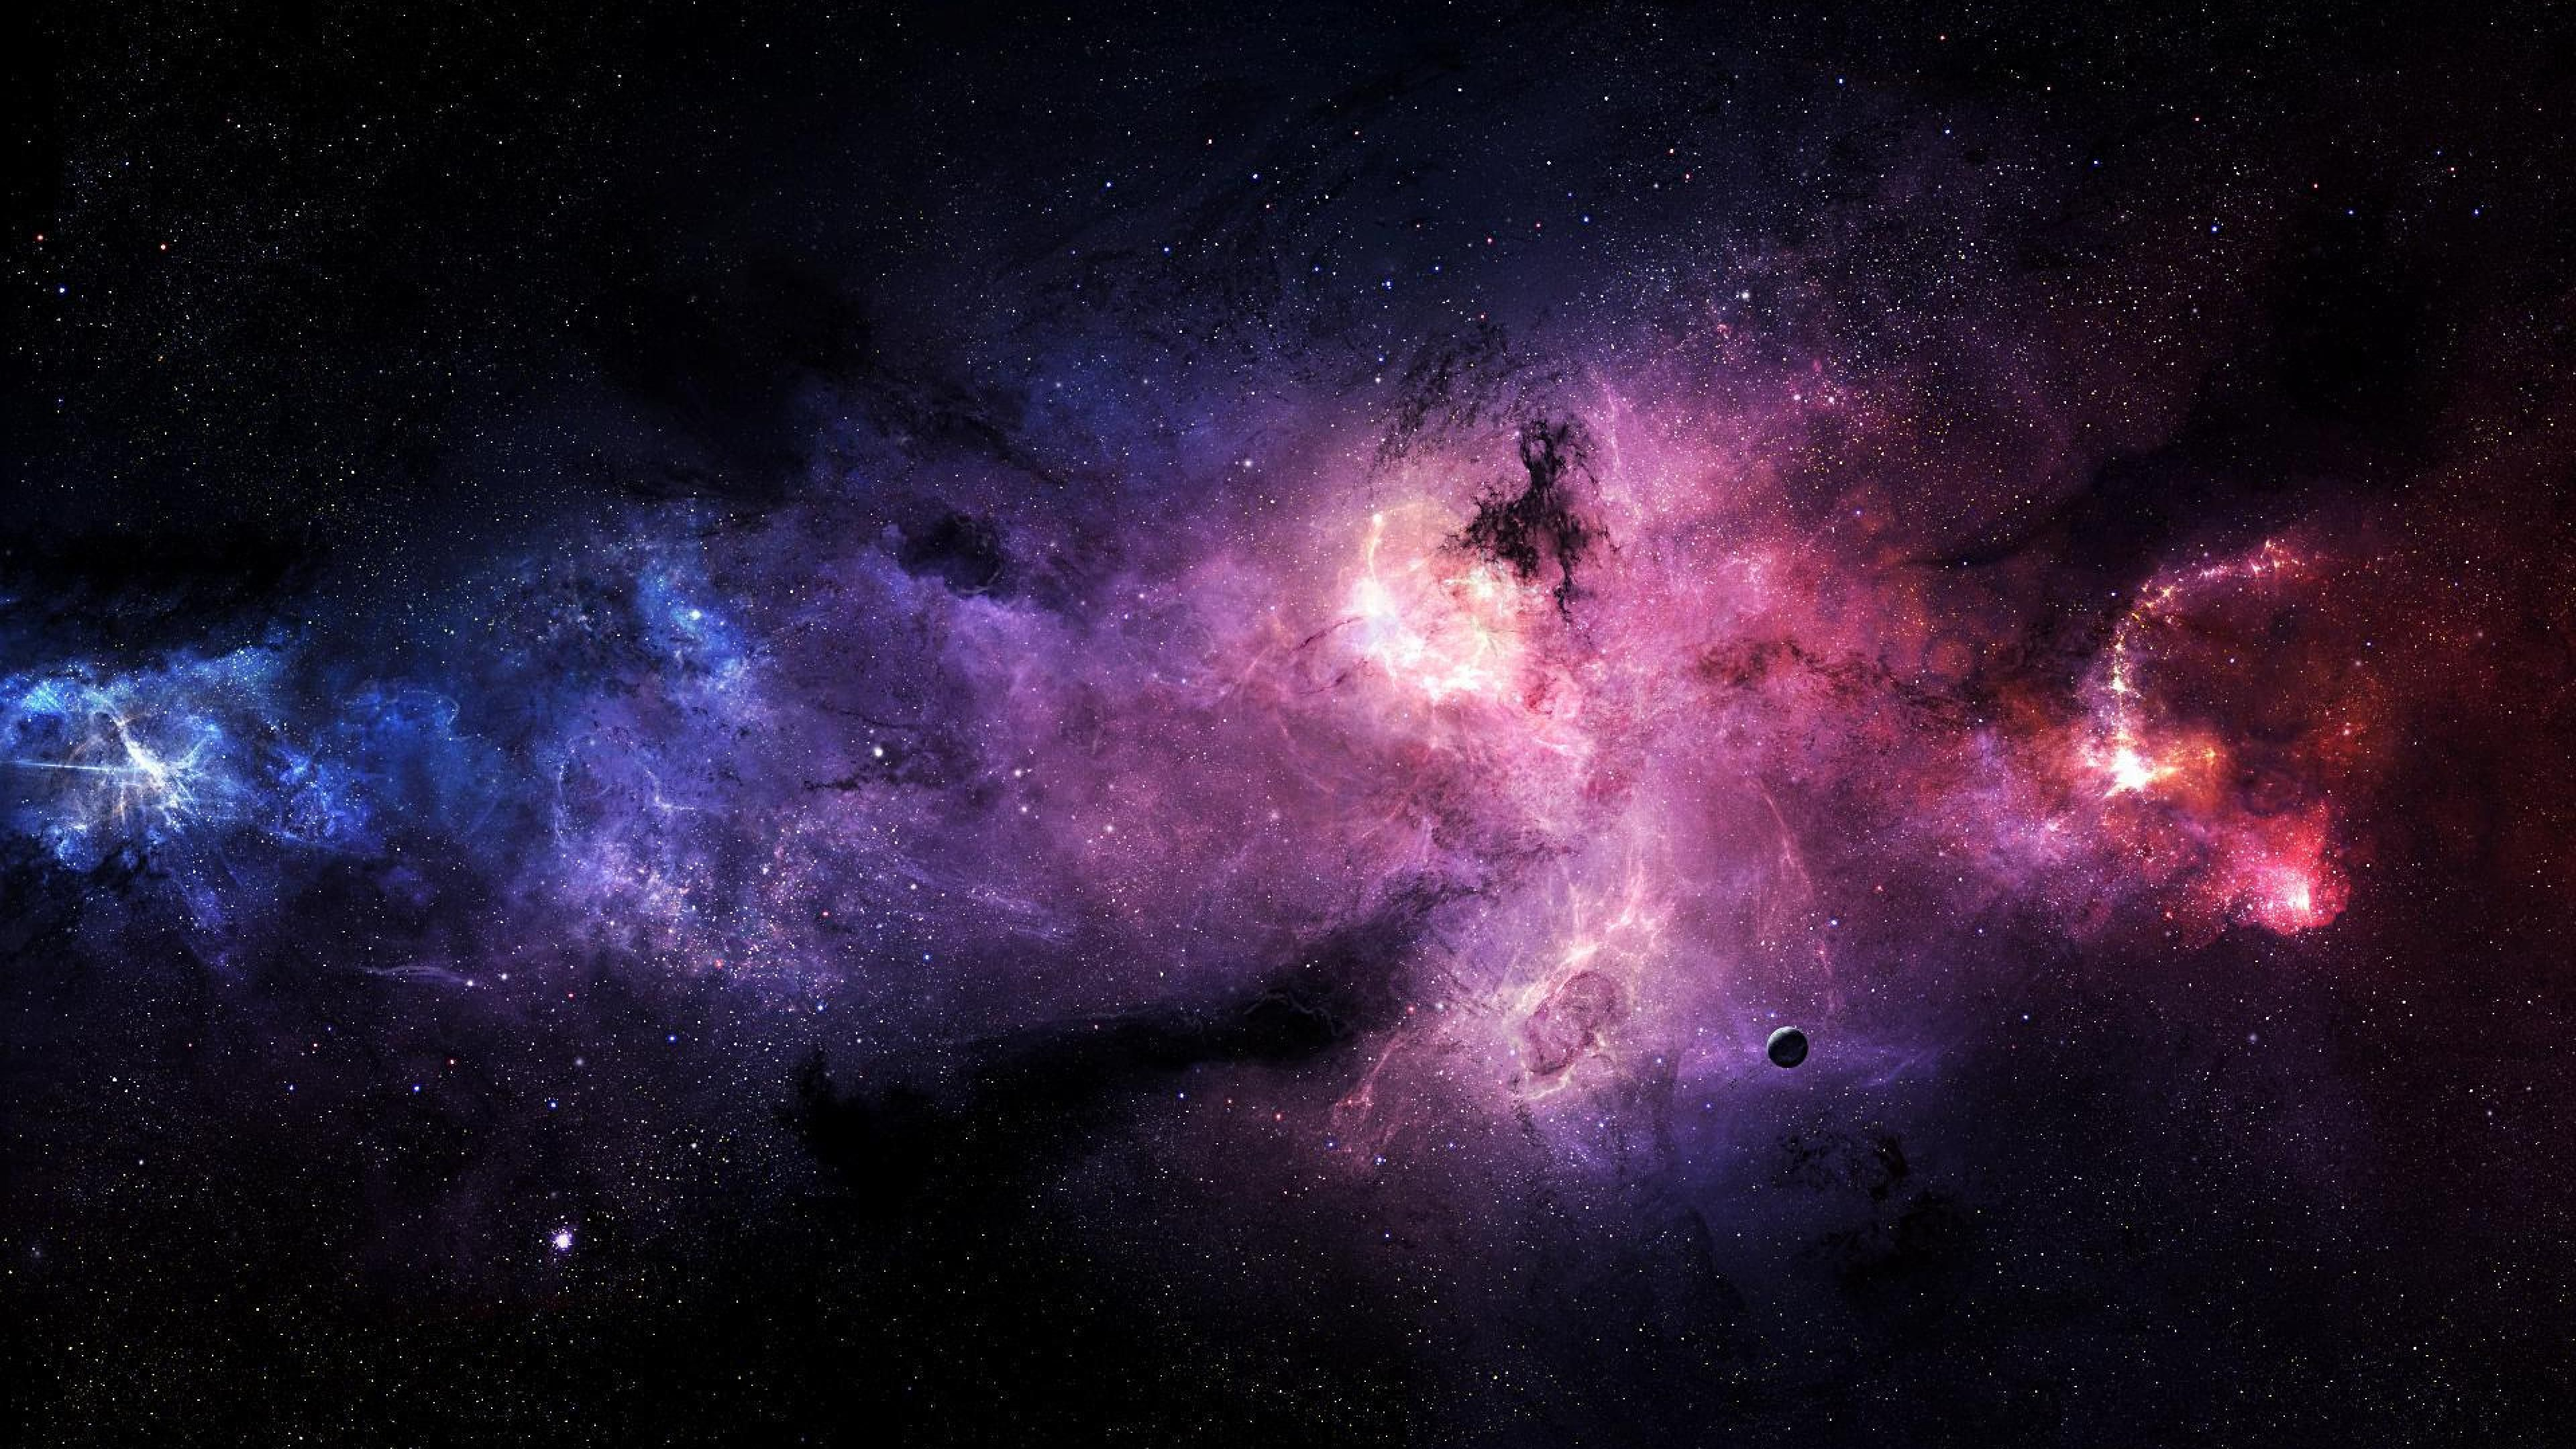 HD Space Wallpapers Find best latest HD Space Wallpapers for your PC desktop background & mobile phones.